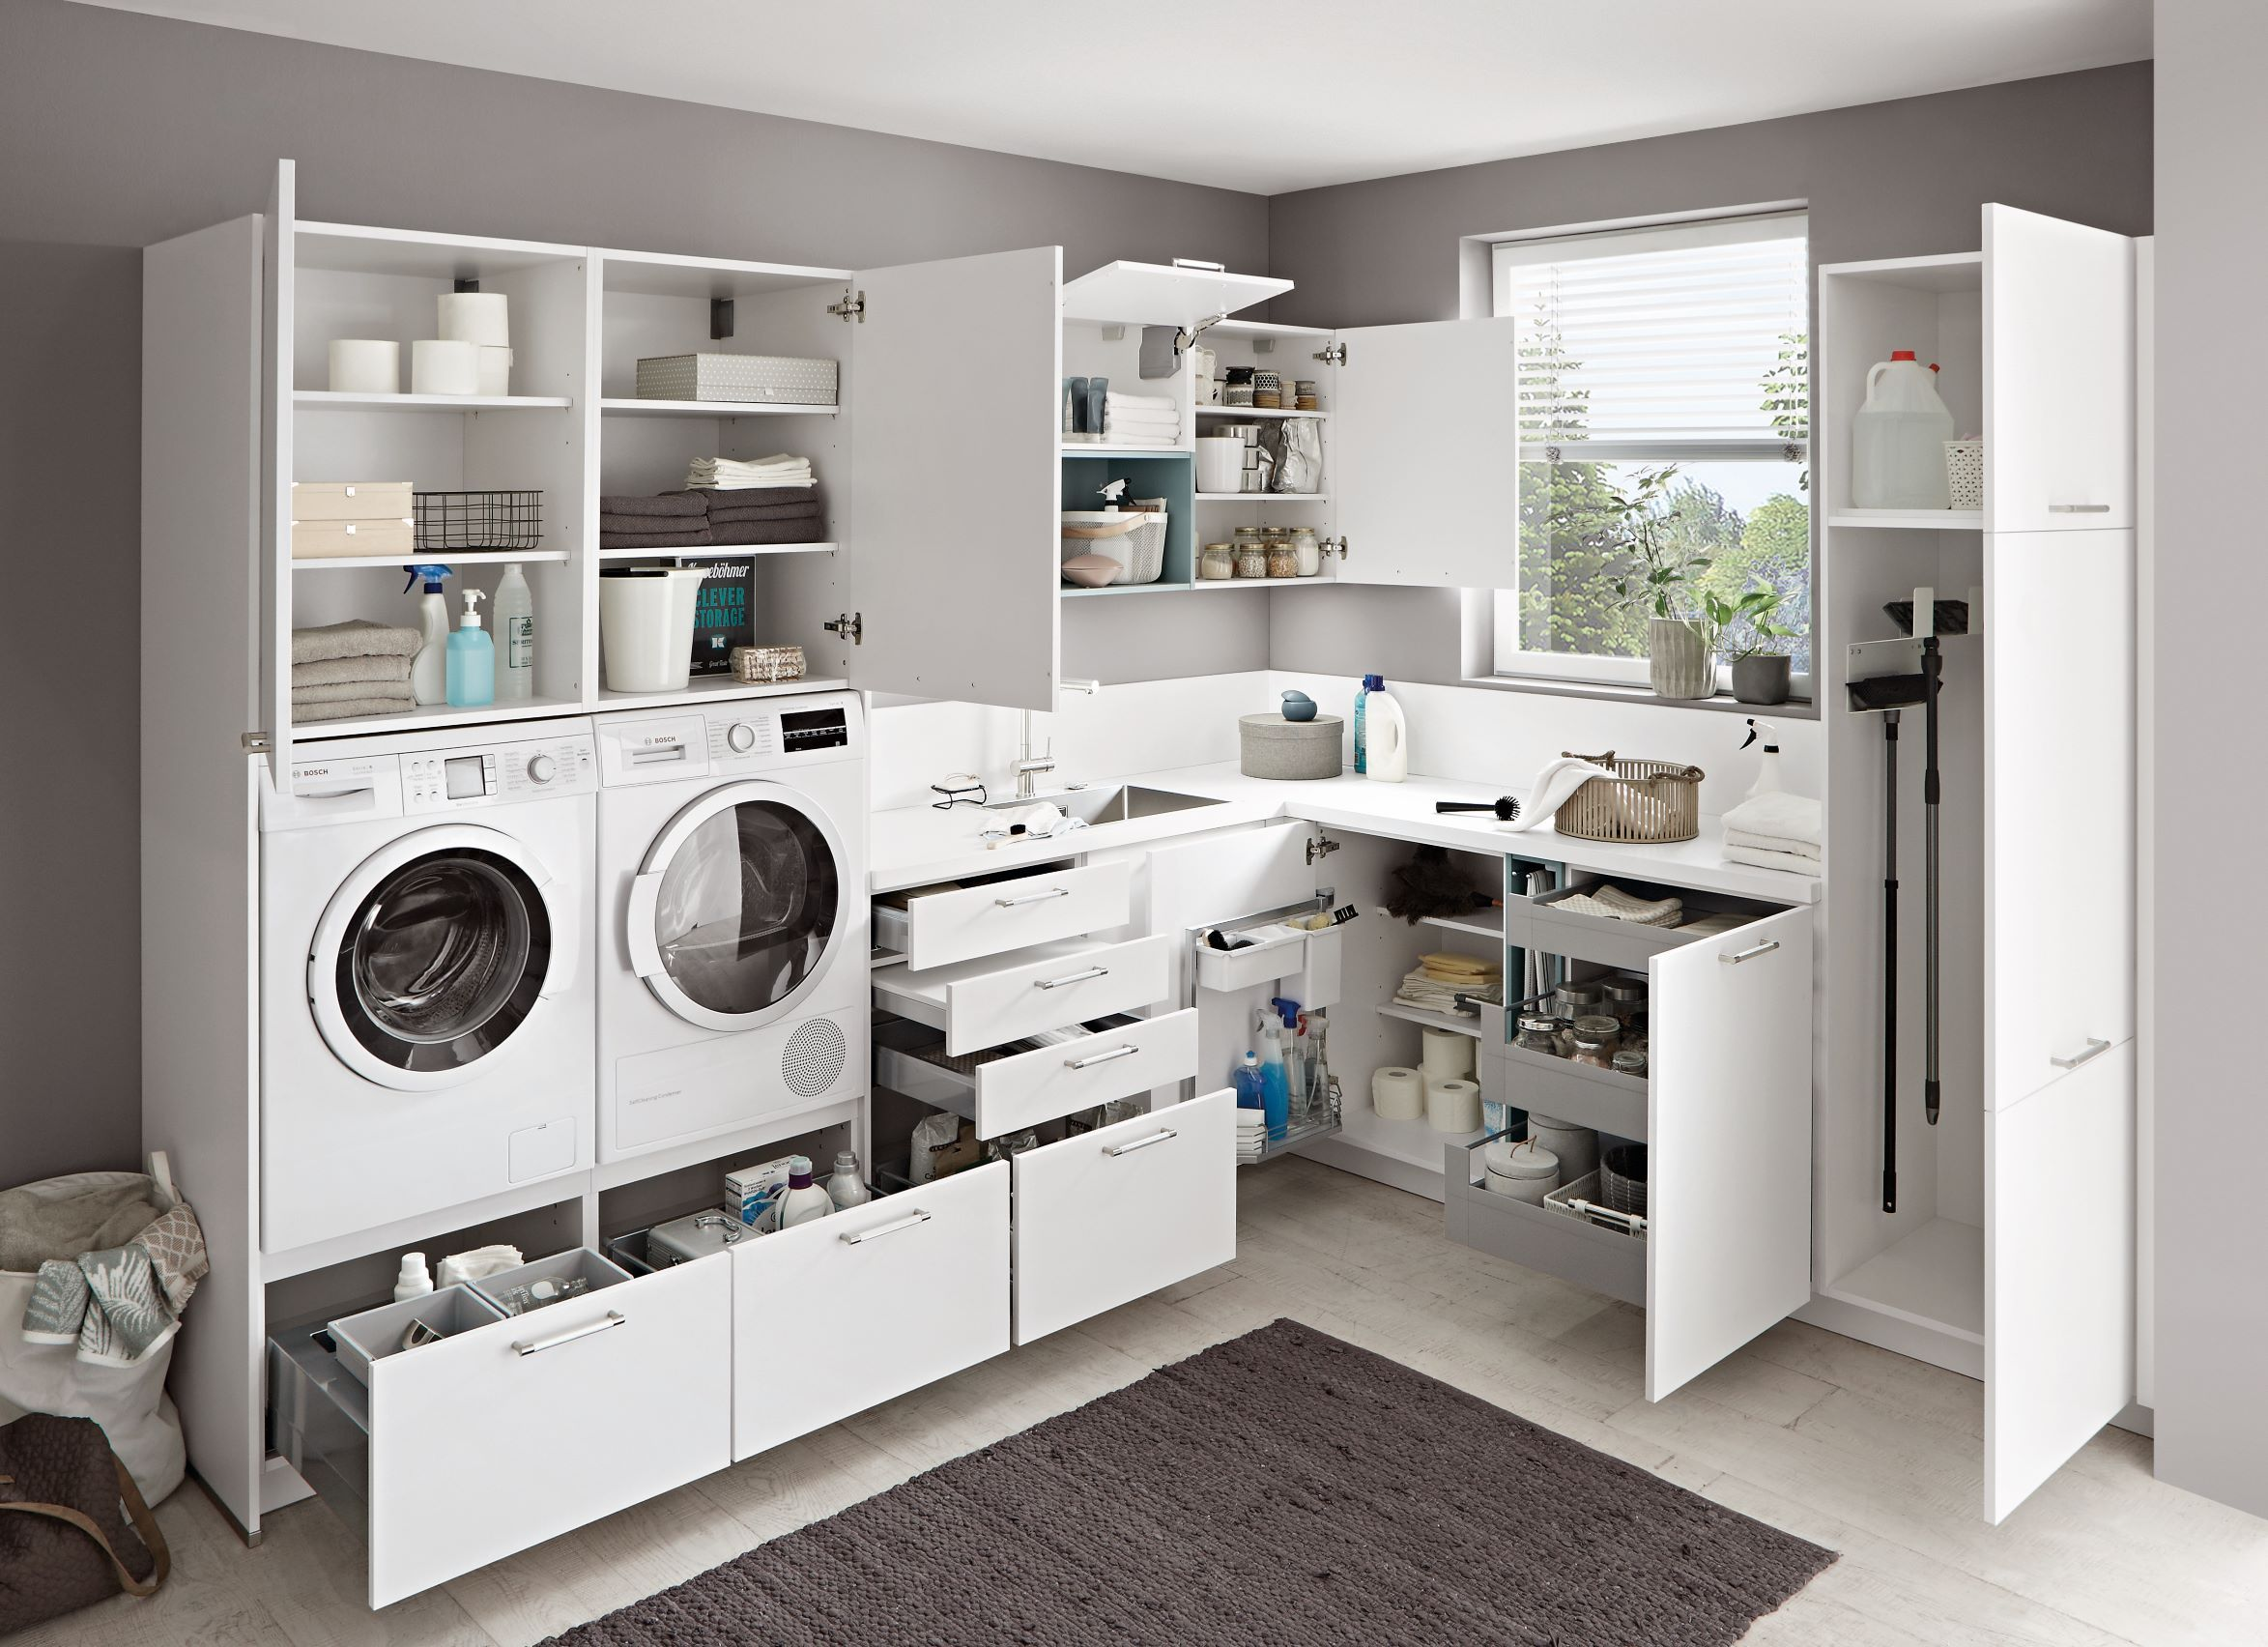 Home image by Nihdya Sidat  Laundry room layouts, Laundry room